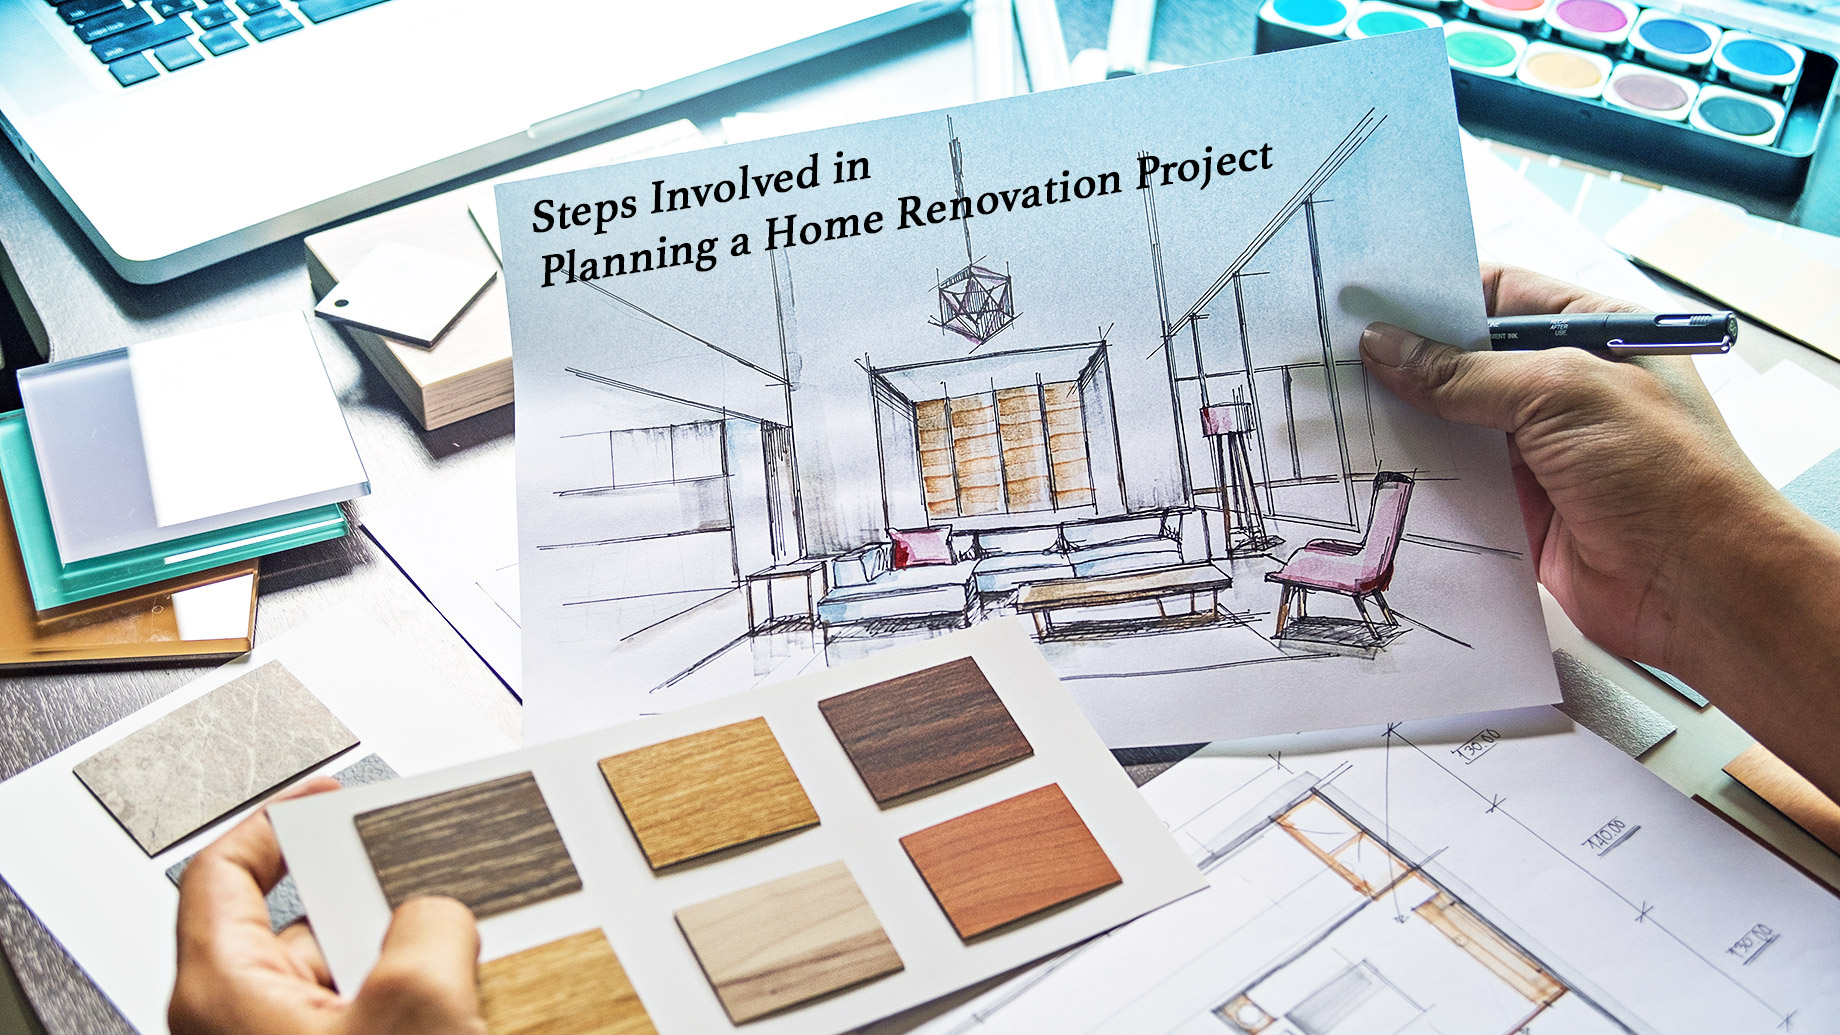 Steps Involved in Planning a Home Renovation Project